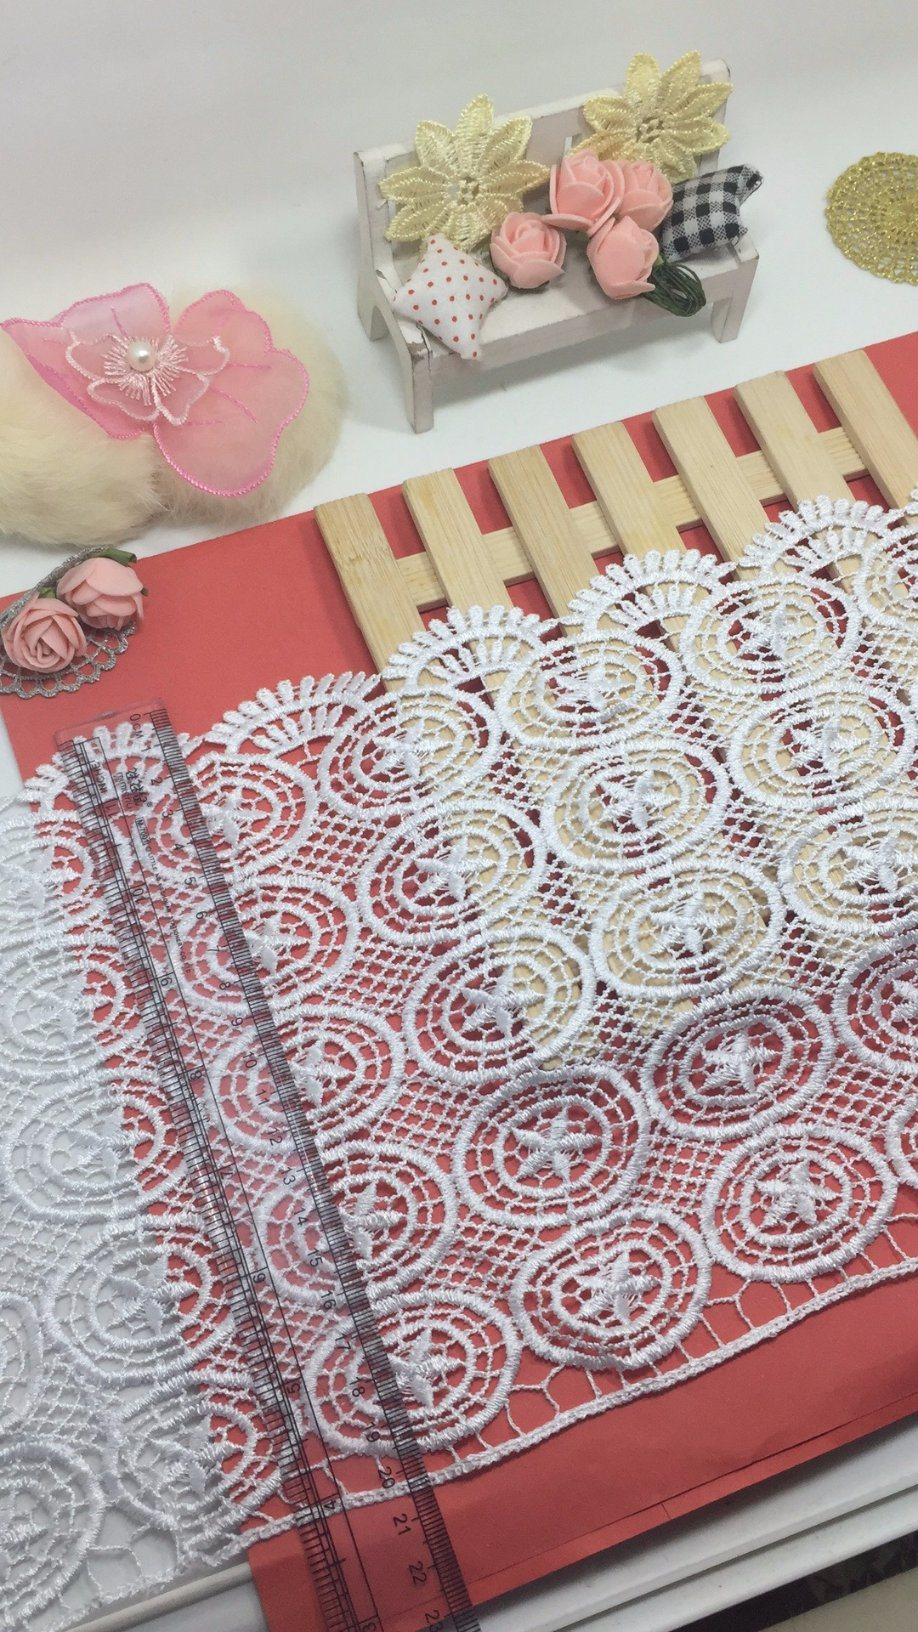 New Design Shape 20.5cm Width Embroidery Trimming Nyron Lace for Garments & Home Textiles & Curtains